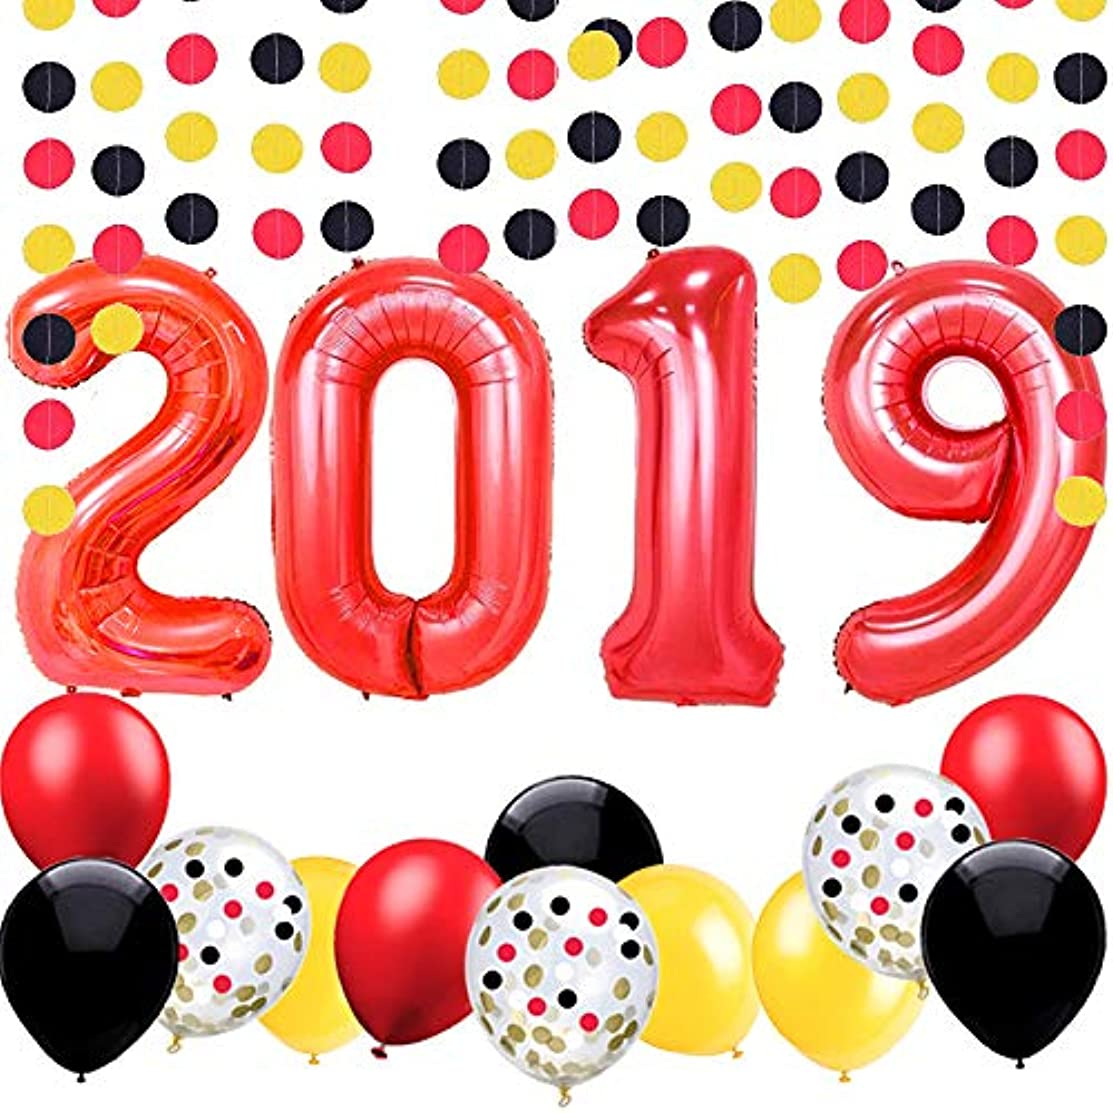 Graduation Balloons-40 Inch Red 2019 Balloons with Yellow Black Red Latex Balloons for,Graduation,Class of 2019 Party Decoration